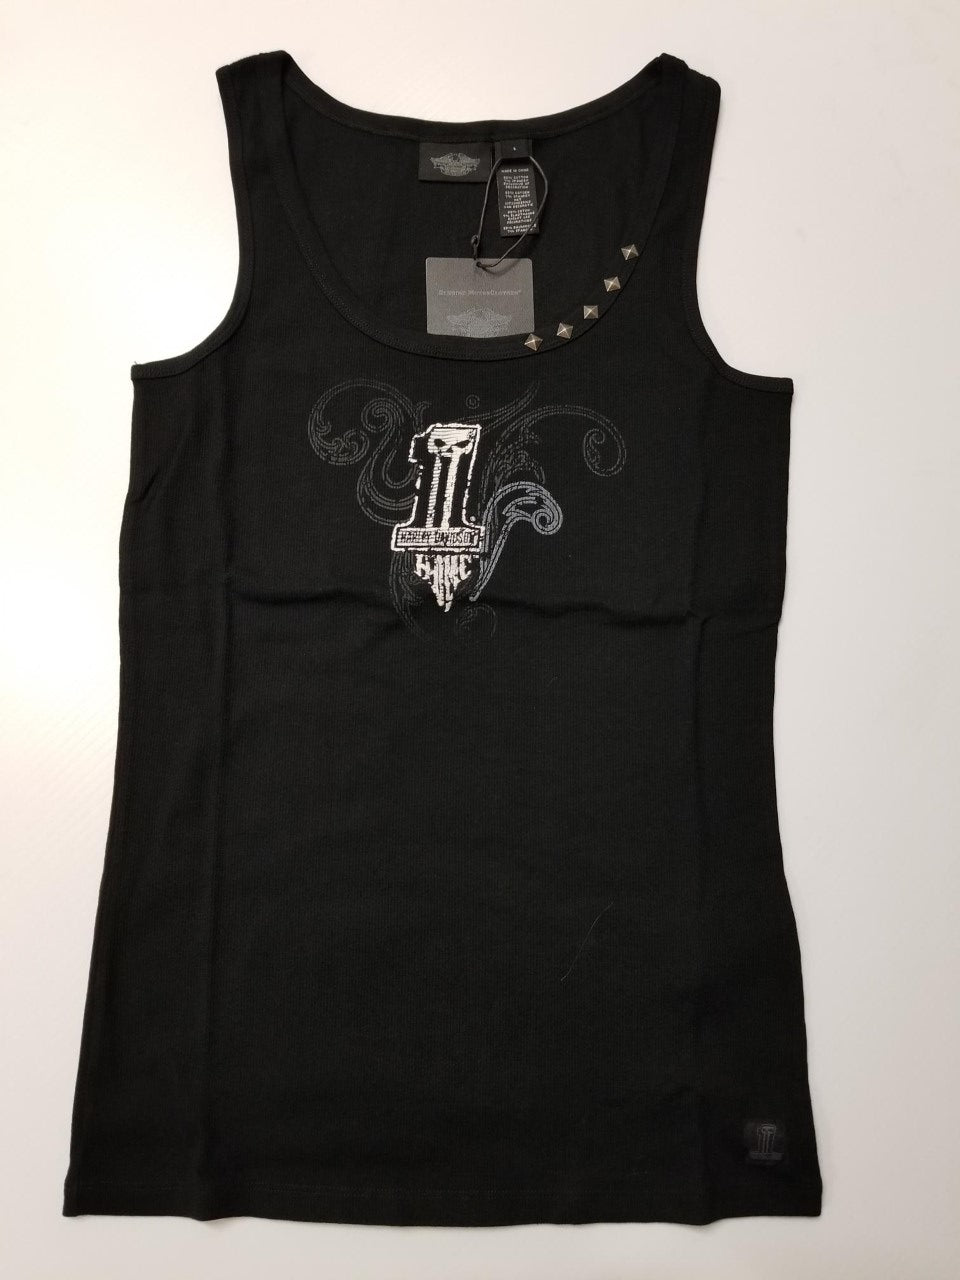 Harley-Davidson flocked tank women's black